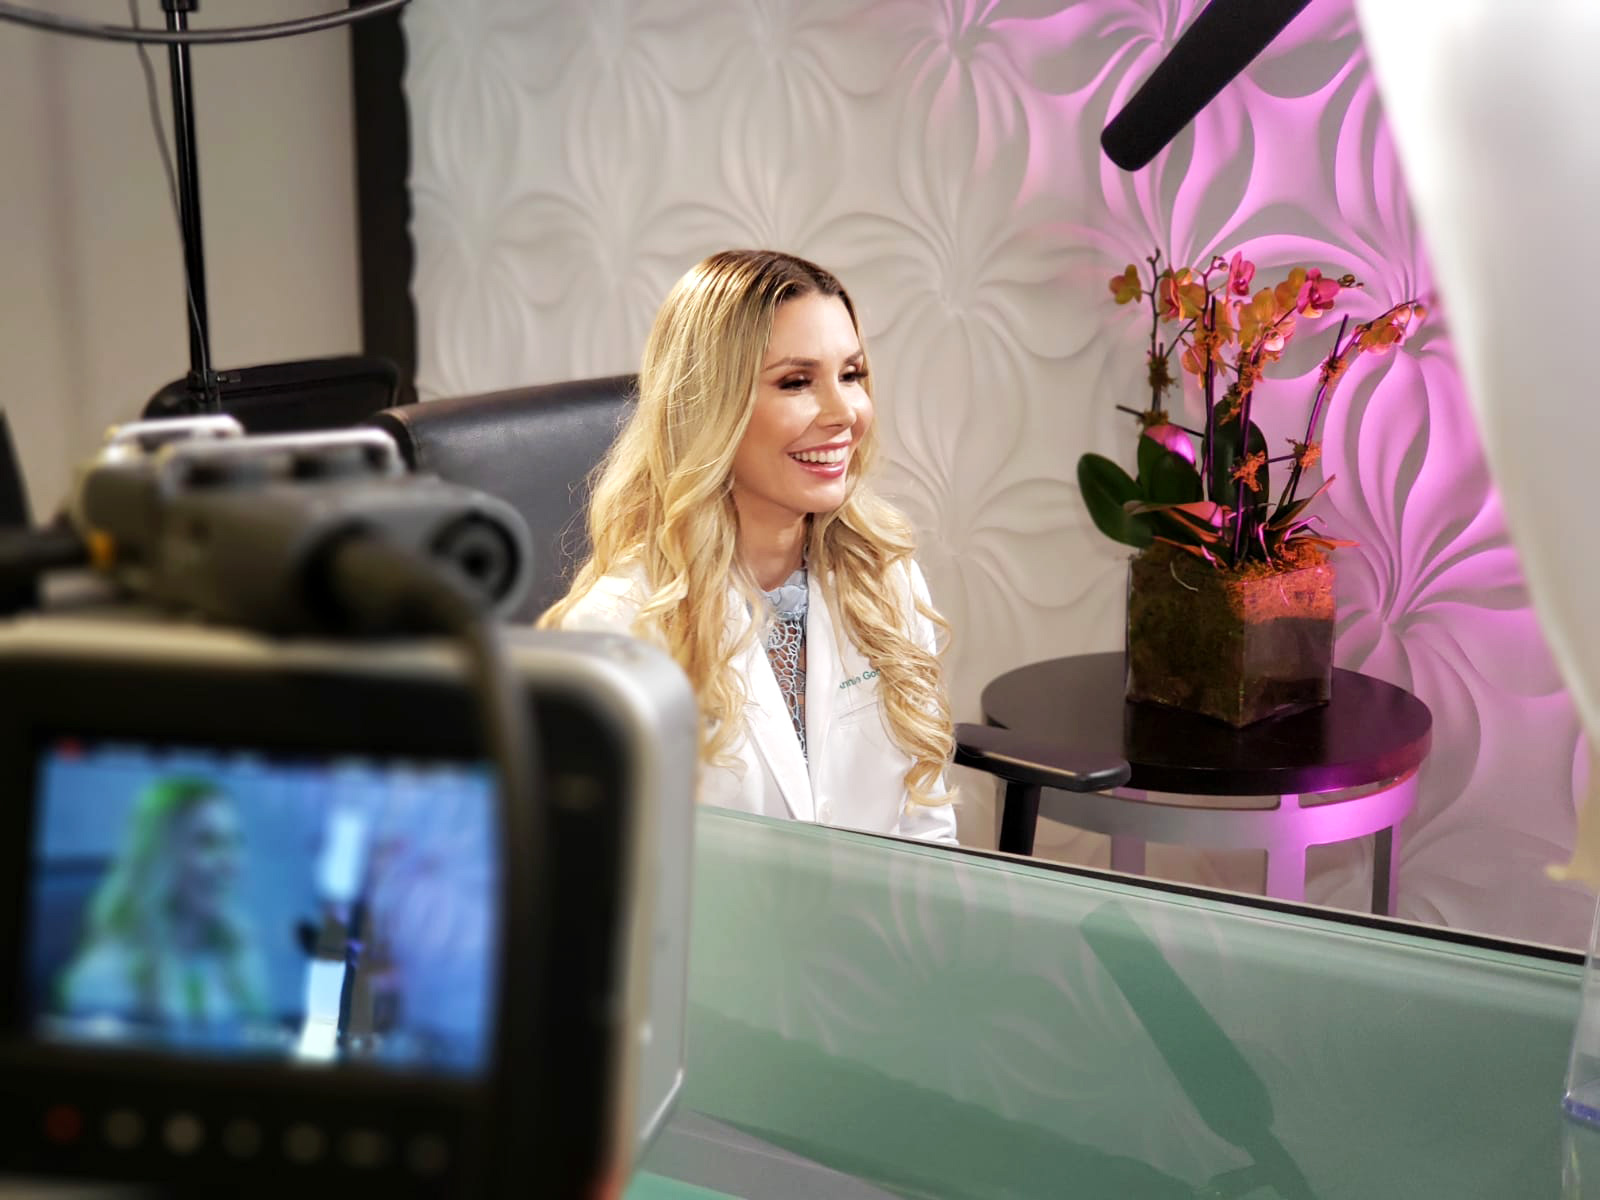 Making cinematography video in a fun way.  Dr. Annie Gonzalez during interview for Botox®, Dysport® and Xeomin® educational video production at Sunset Dermatology.